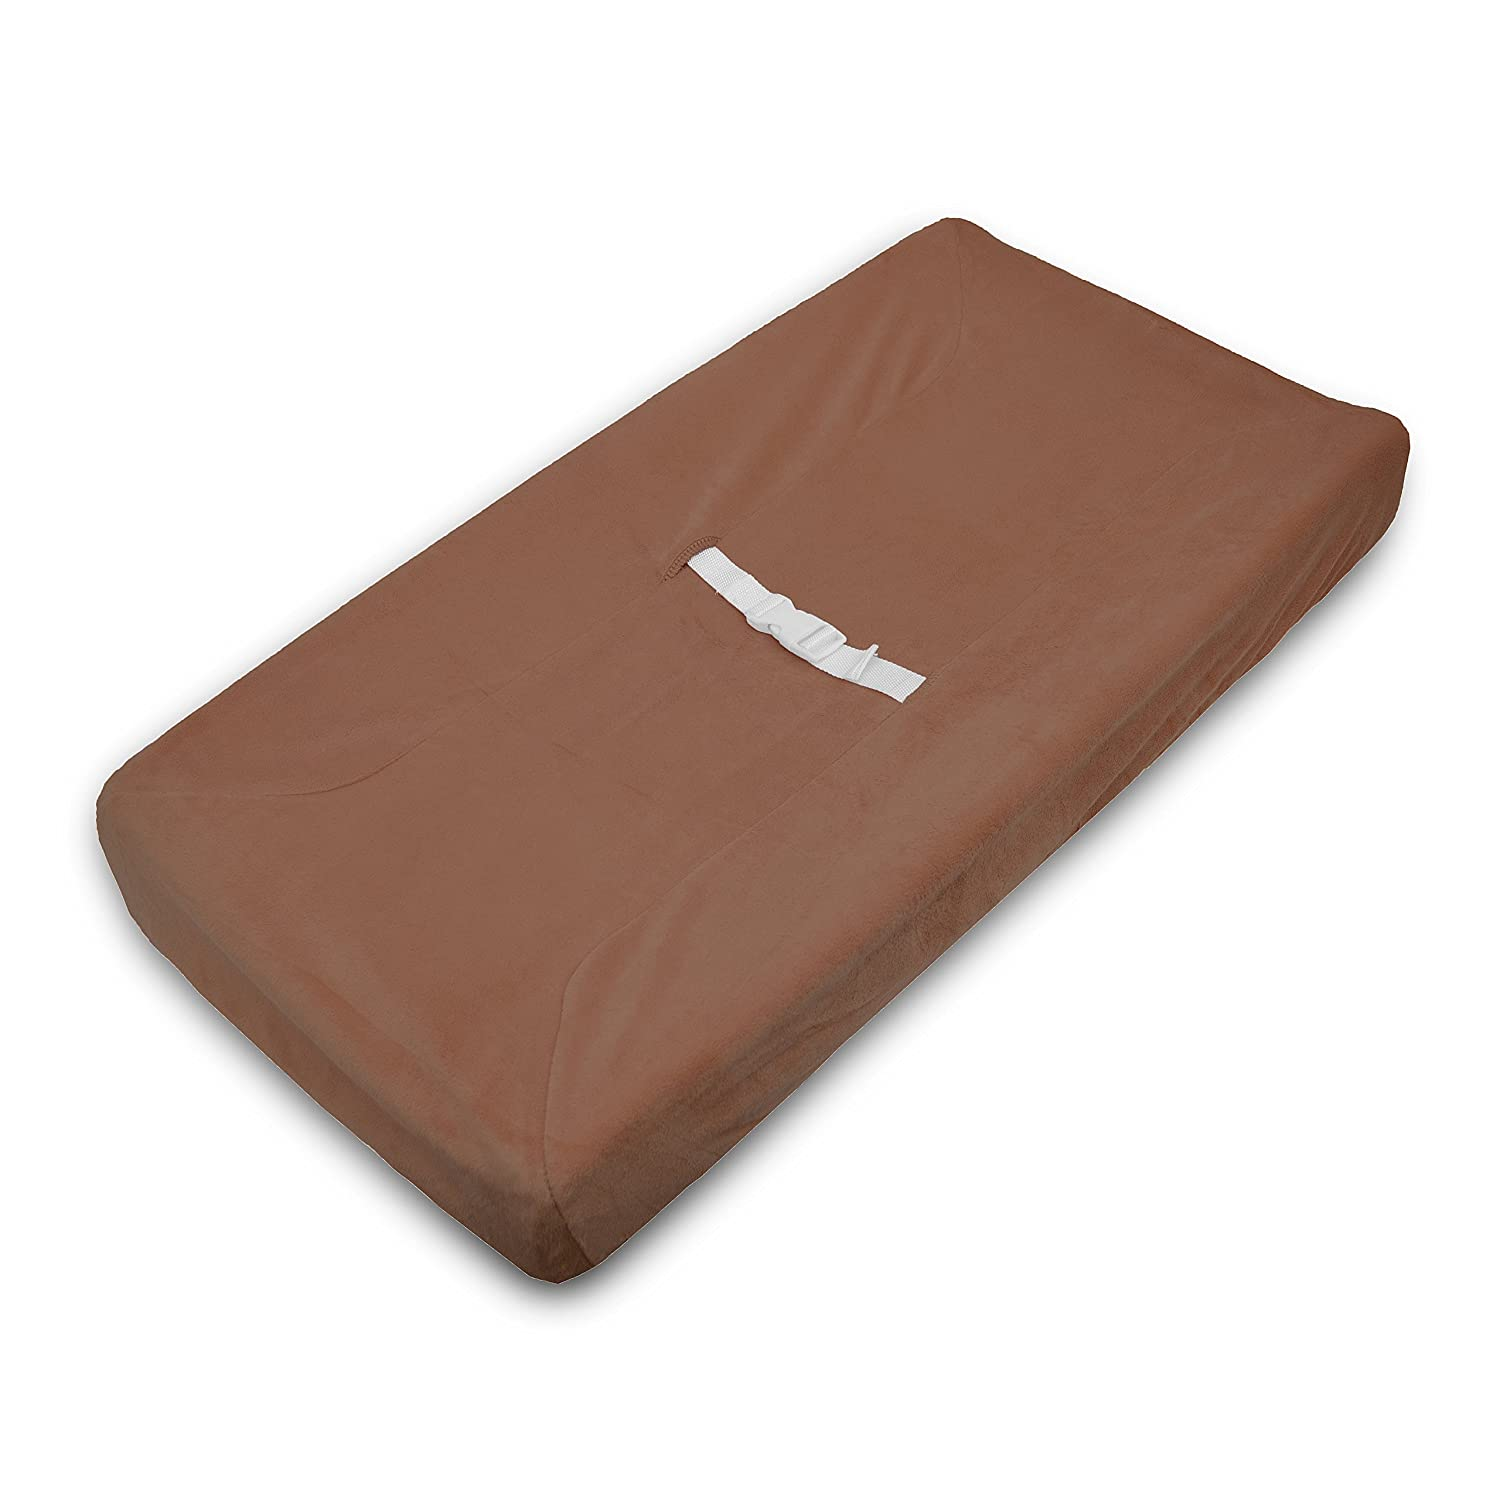 TL Care Heavenly Soft Chenille Fitted Contoured Changing Pad Cover, Chocolate by TL Care   B0199GEM9U